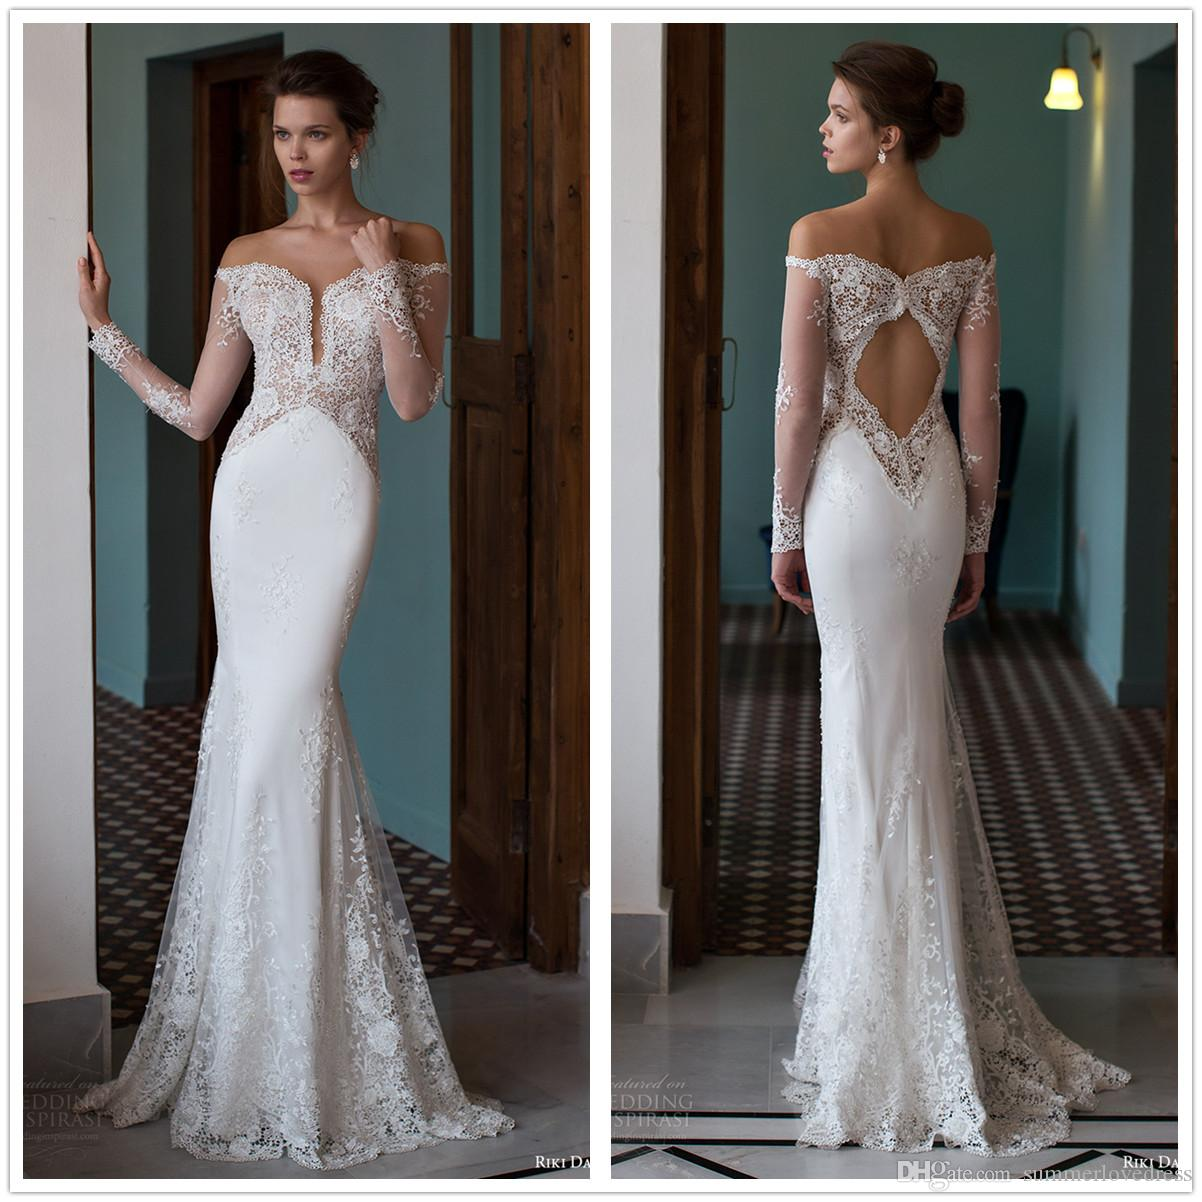 Vintage Illusion Lace Mermaid Wedding Dresses Sheer Long Sleeves Tulle Applique Backless Floor Length Wedding Bridal Gowns